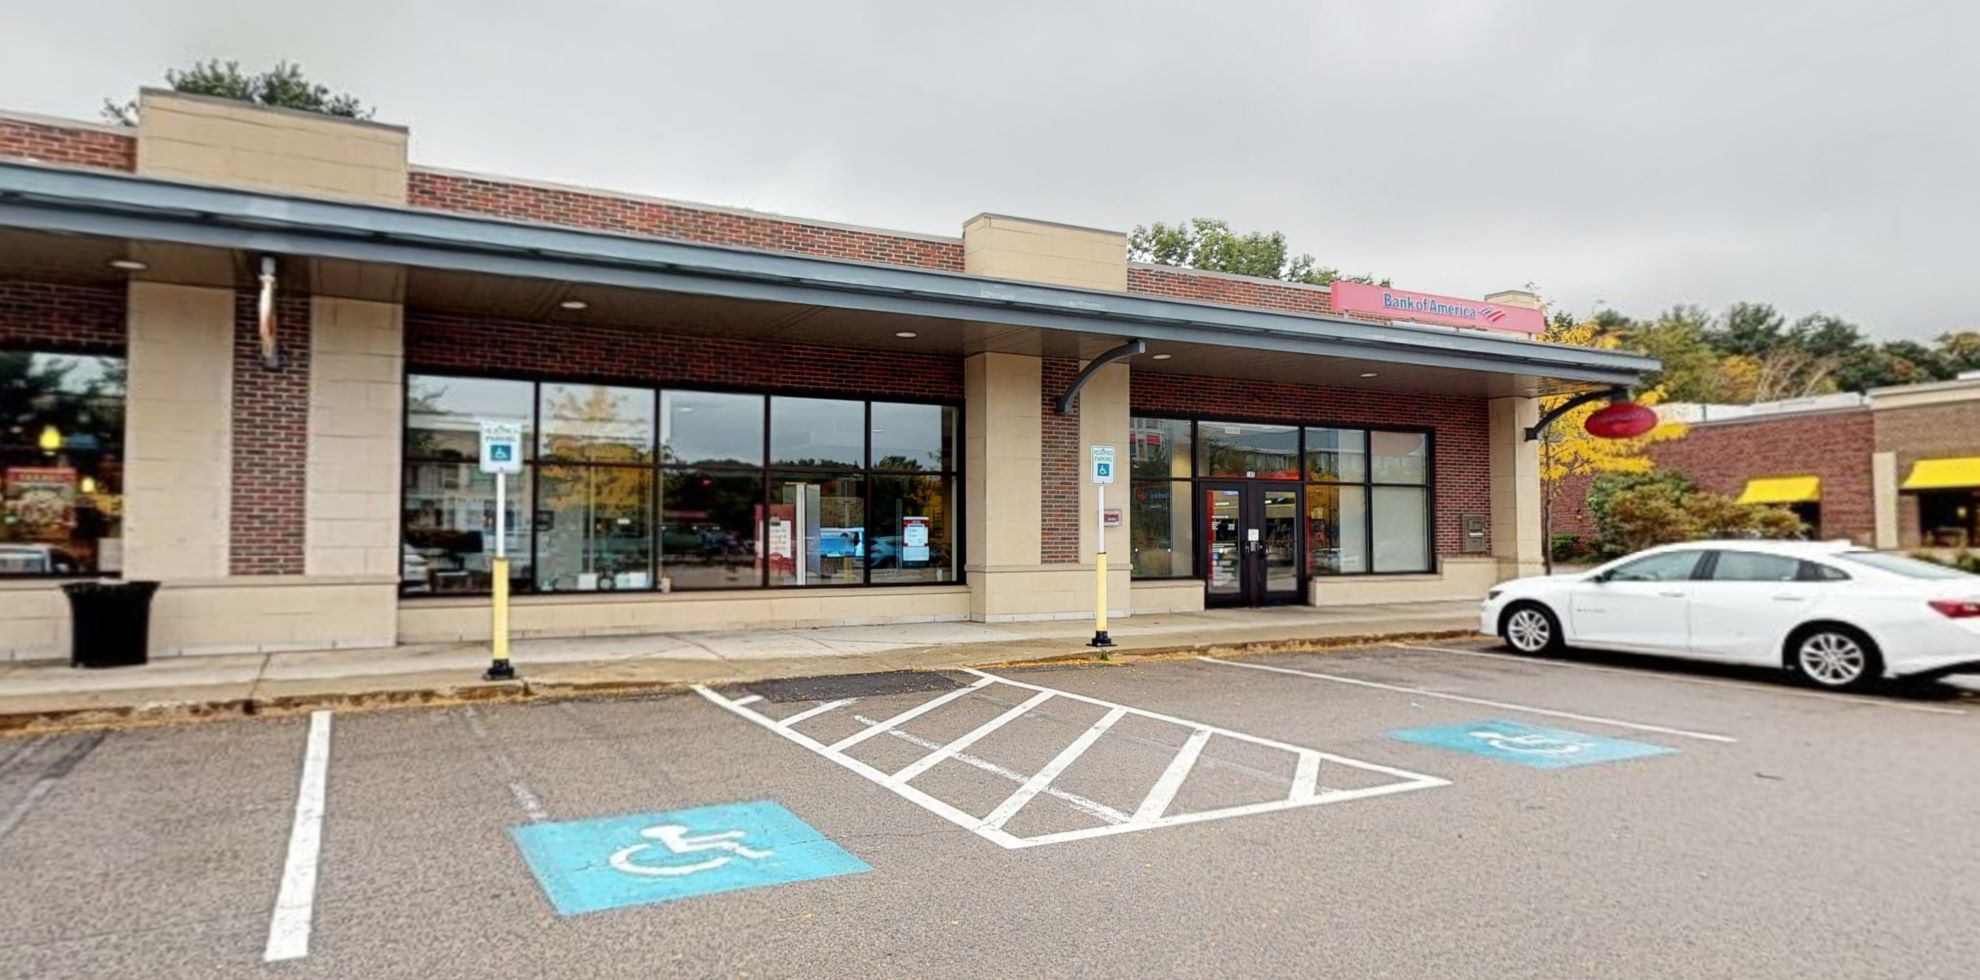 Bank of America financial center with drive-thru ATM and teller | 185 Linden St, Wellesley, MA 02482